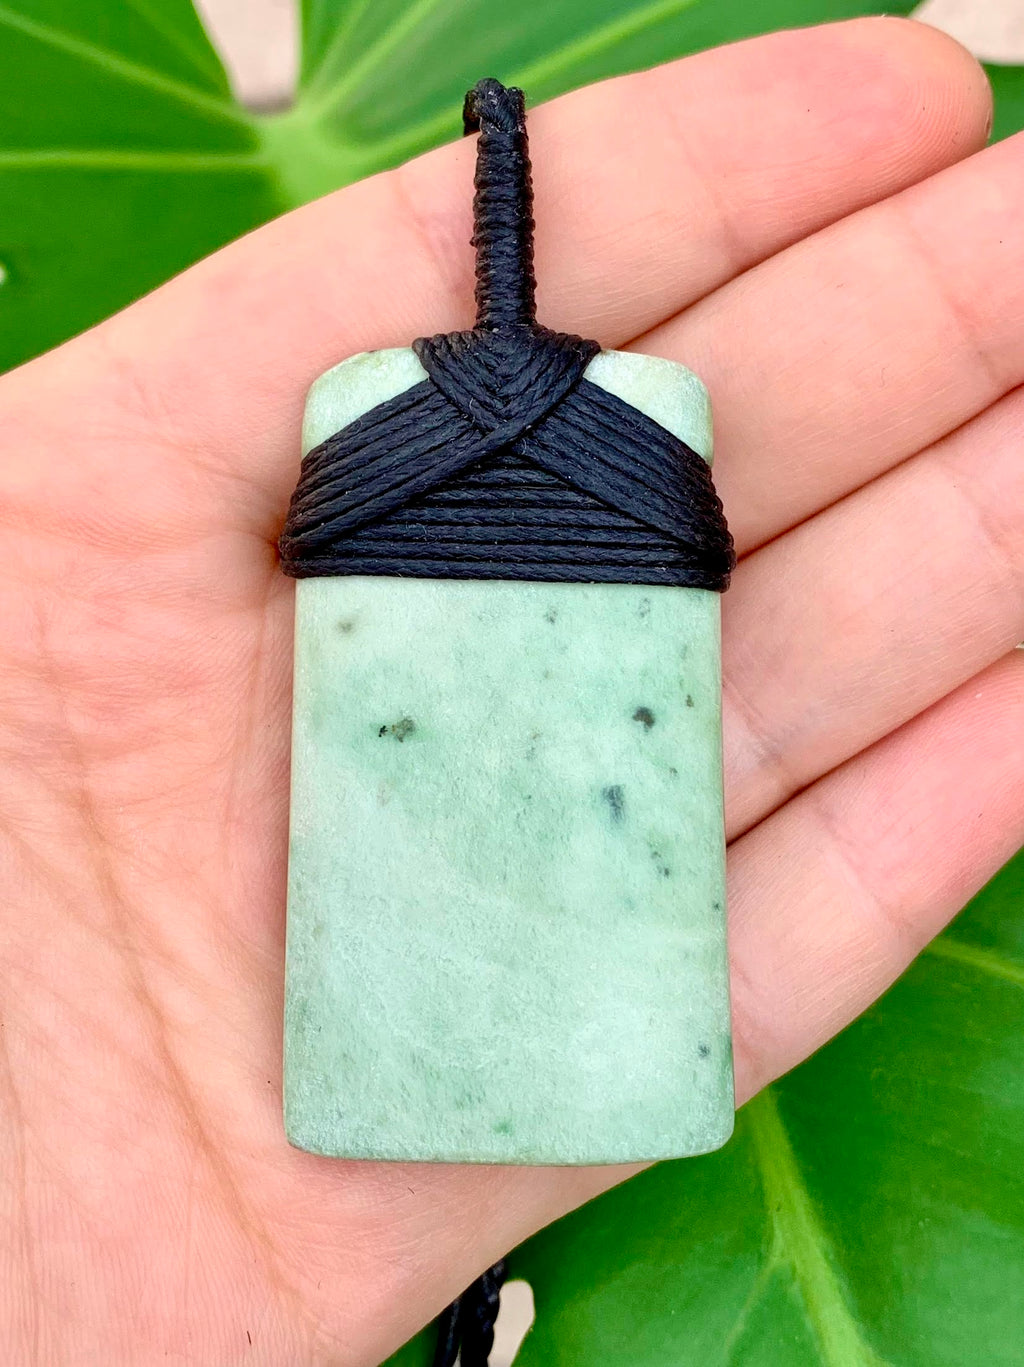 Wide Hei Toki Blade Medium Size Kokopu Pounamu Pendant with Raw Surface